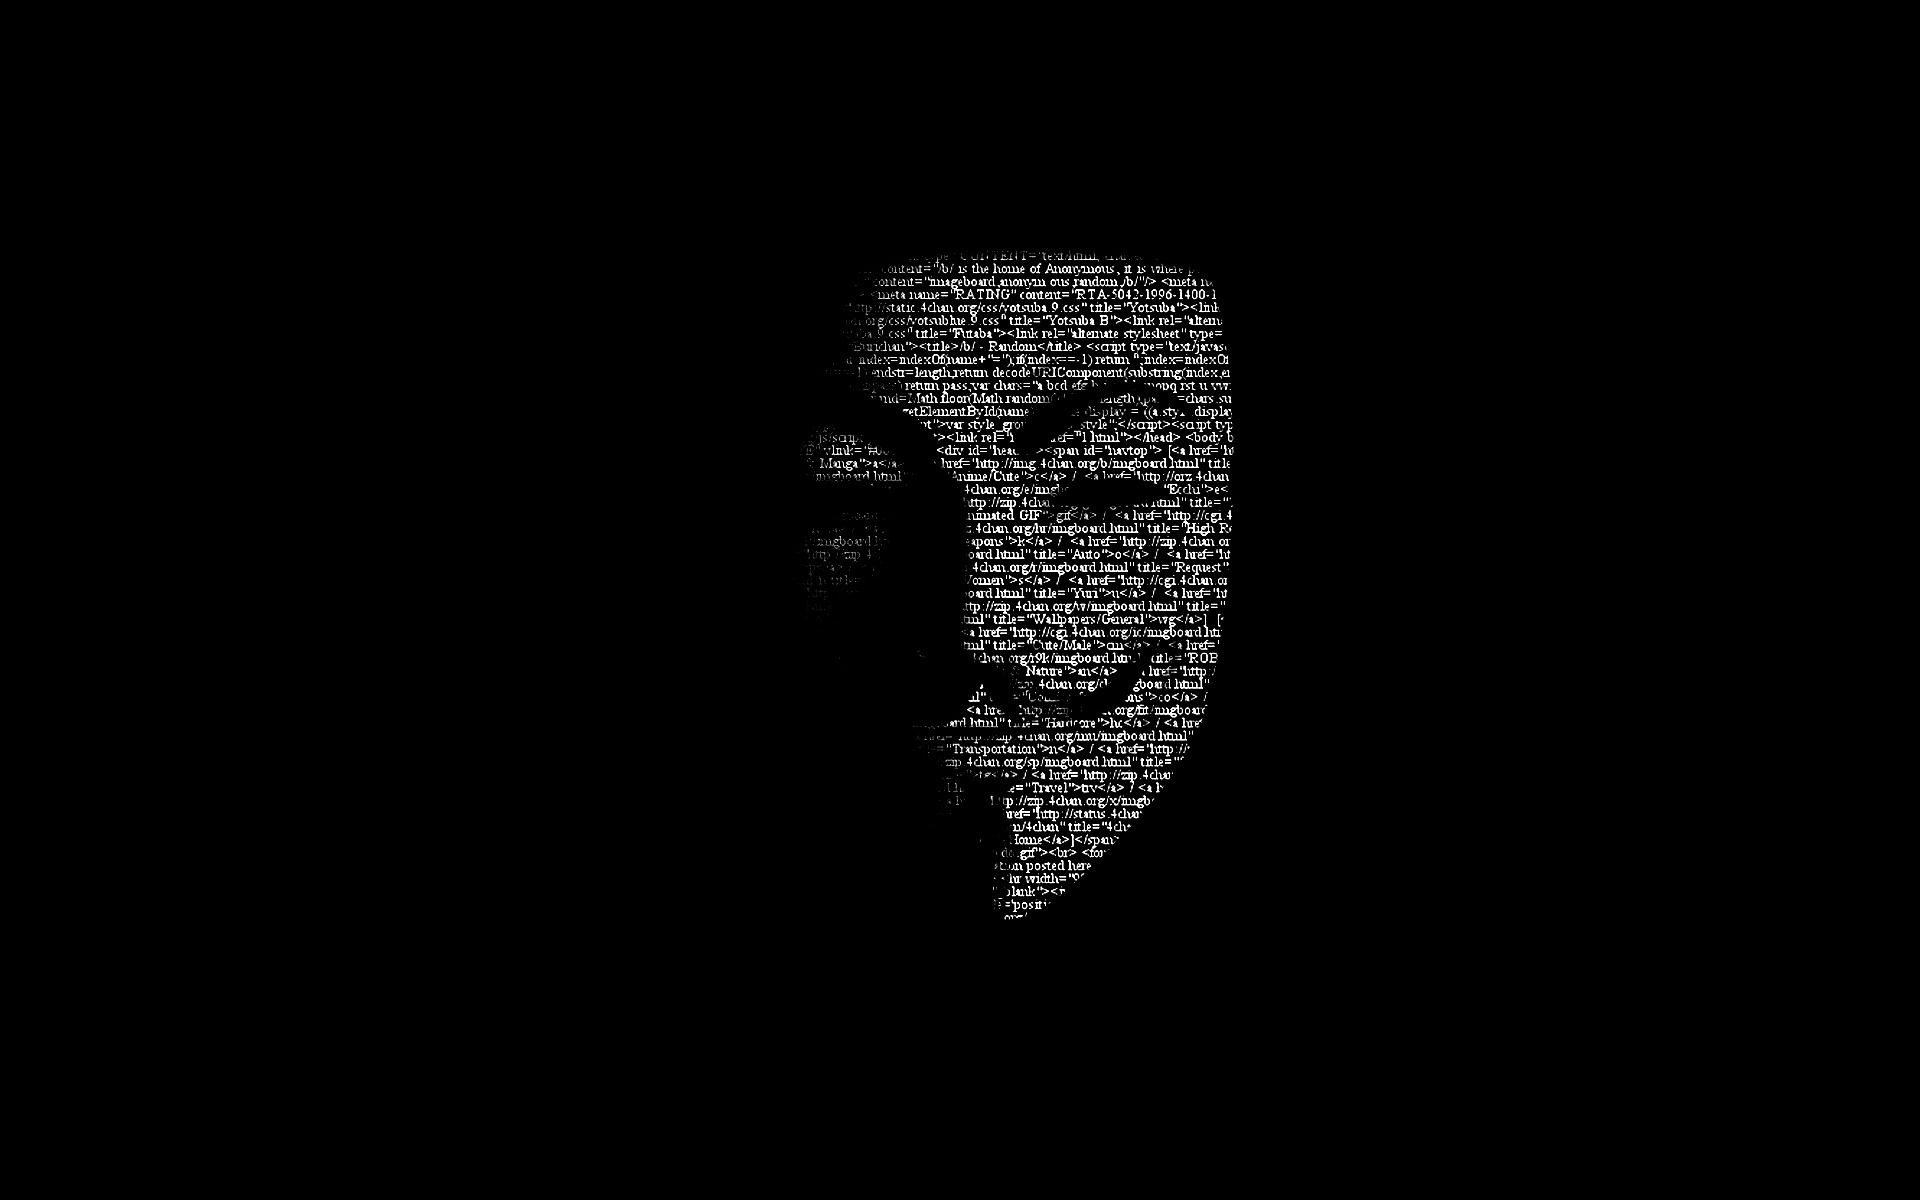 Undefined Mask Wallpaper 40 Wallpapers Adorable Wallpapers Code Wallpaper Vendetta Wallpaper Cool Wallpaper